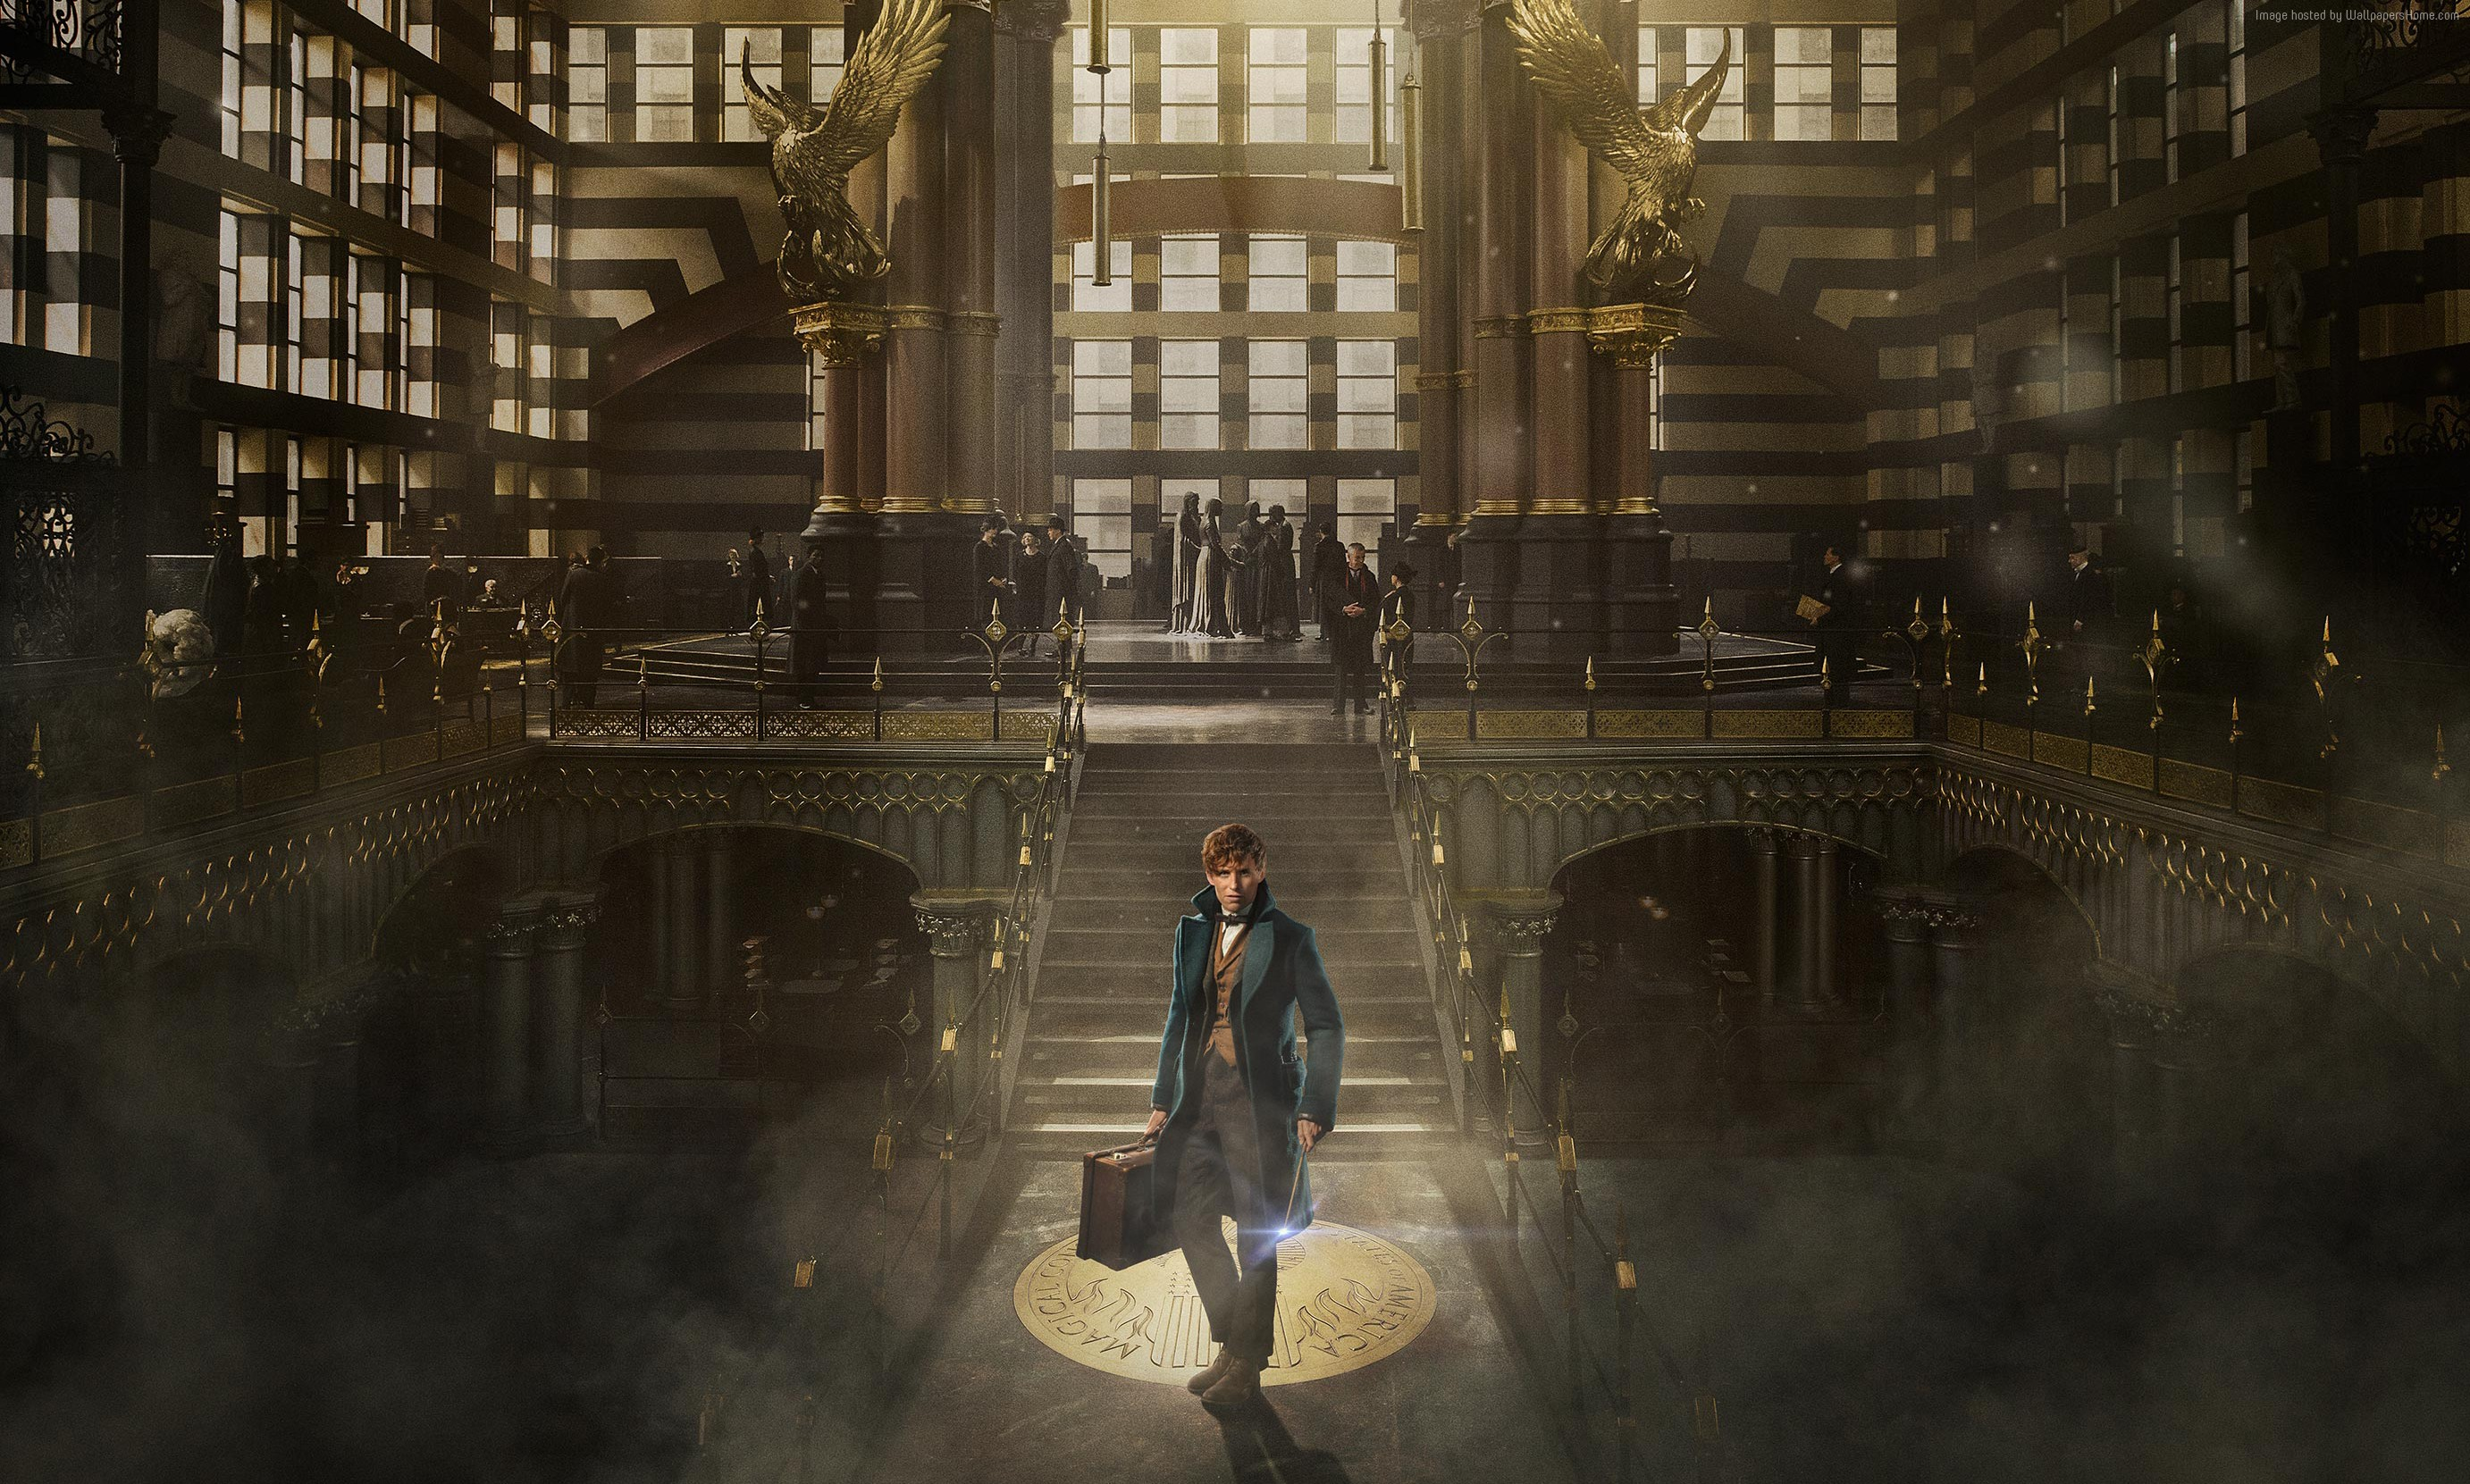 Fantastic Beasts and Where to Find Them Wallpaper 2   2764 X 1661 2764x1661